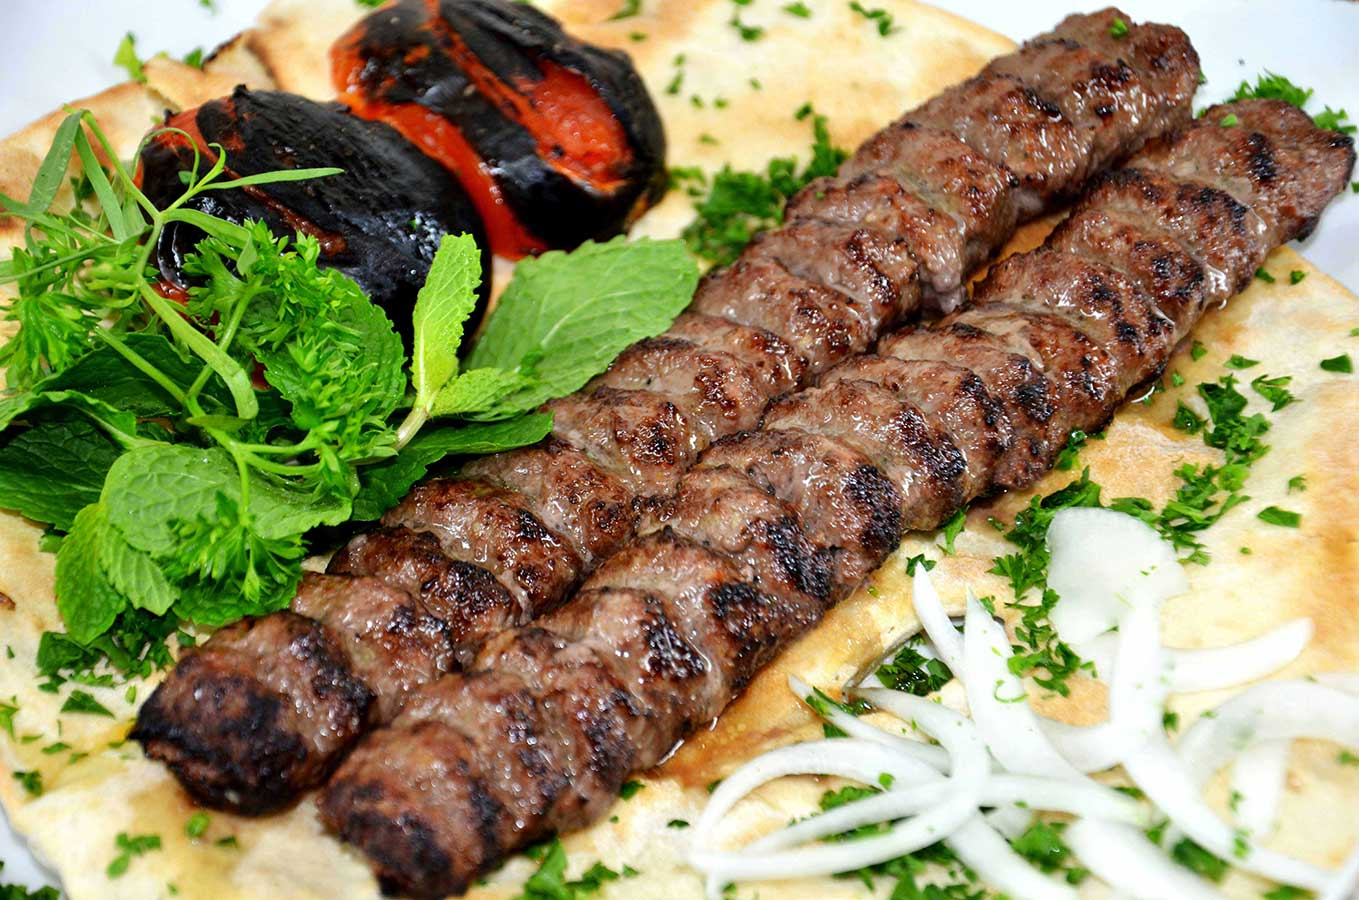 kabob - Persian Food favorite